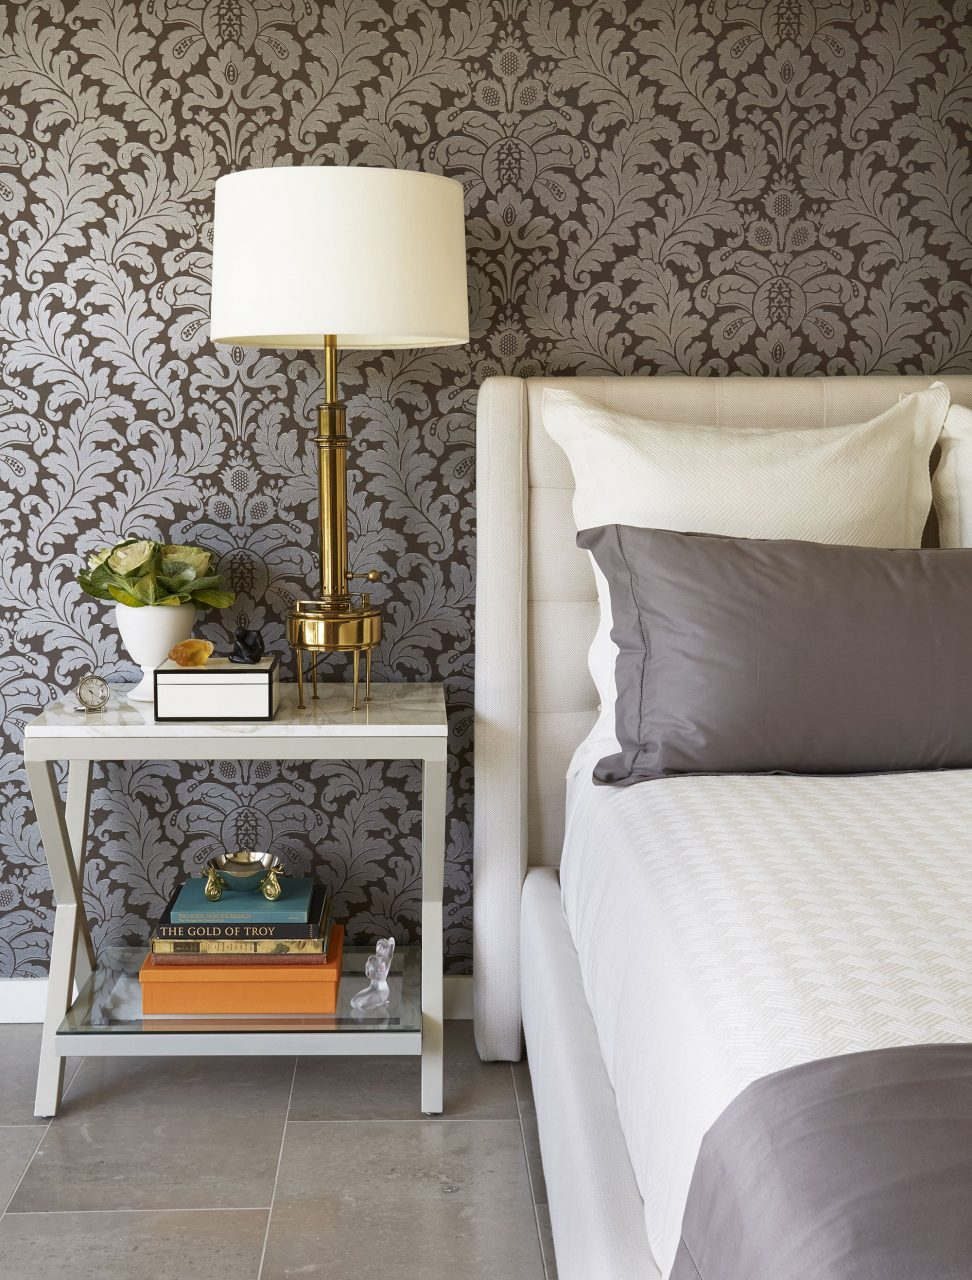 30 Bedrooms With Statement Wallpaper